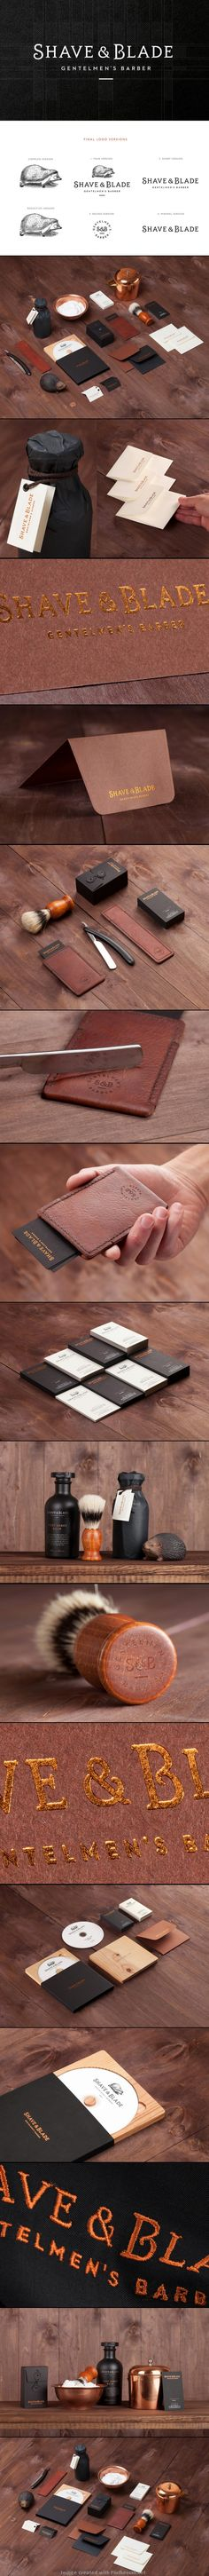 ... Business cards on Pinterest Business cards, Barbers and Barber shop